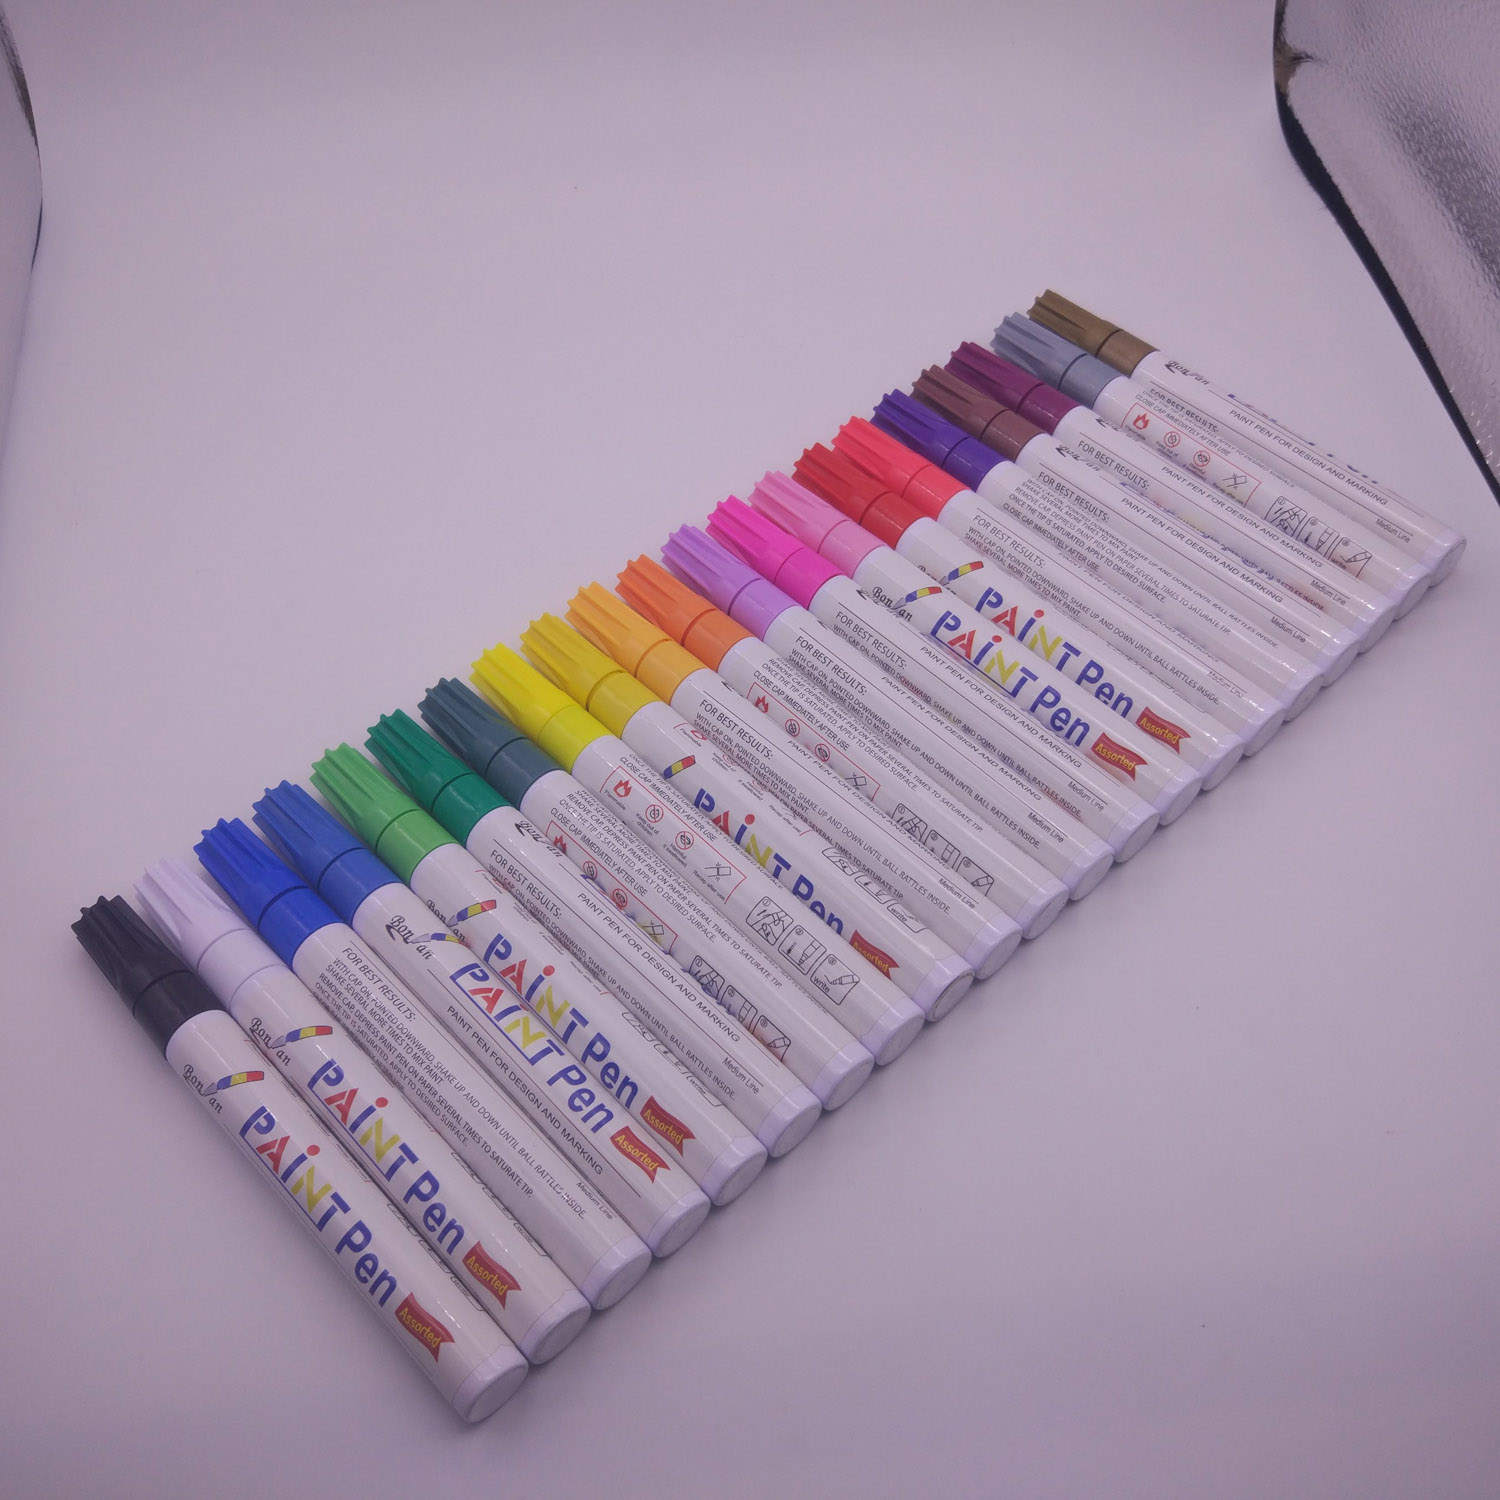 21 pcs Paint pens for Rock stone  Painting - Wood, Glass, Metal and Ceramic Works on Almost All Surfaces